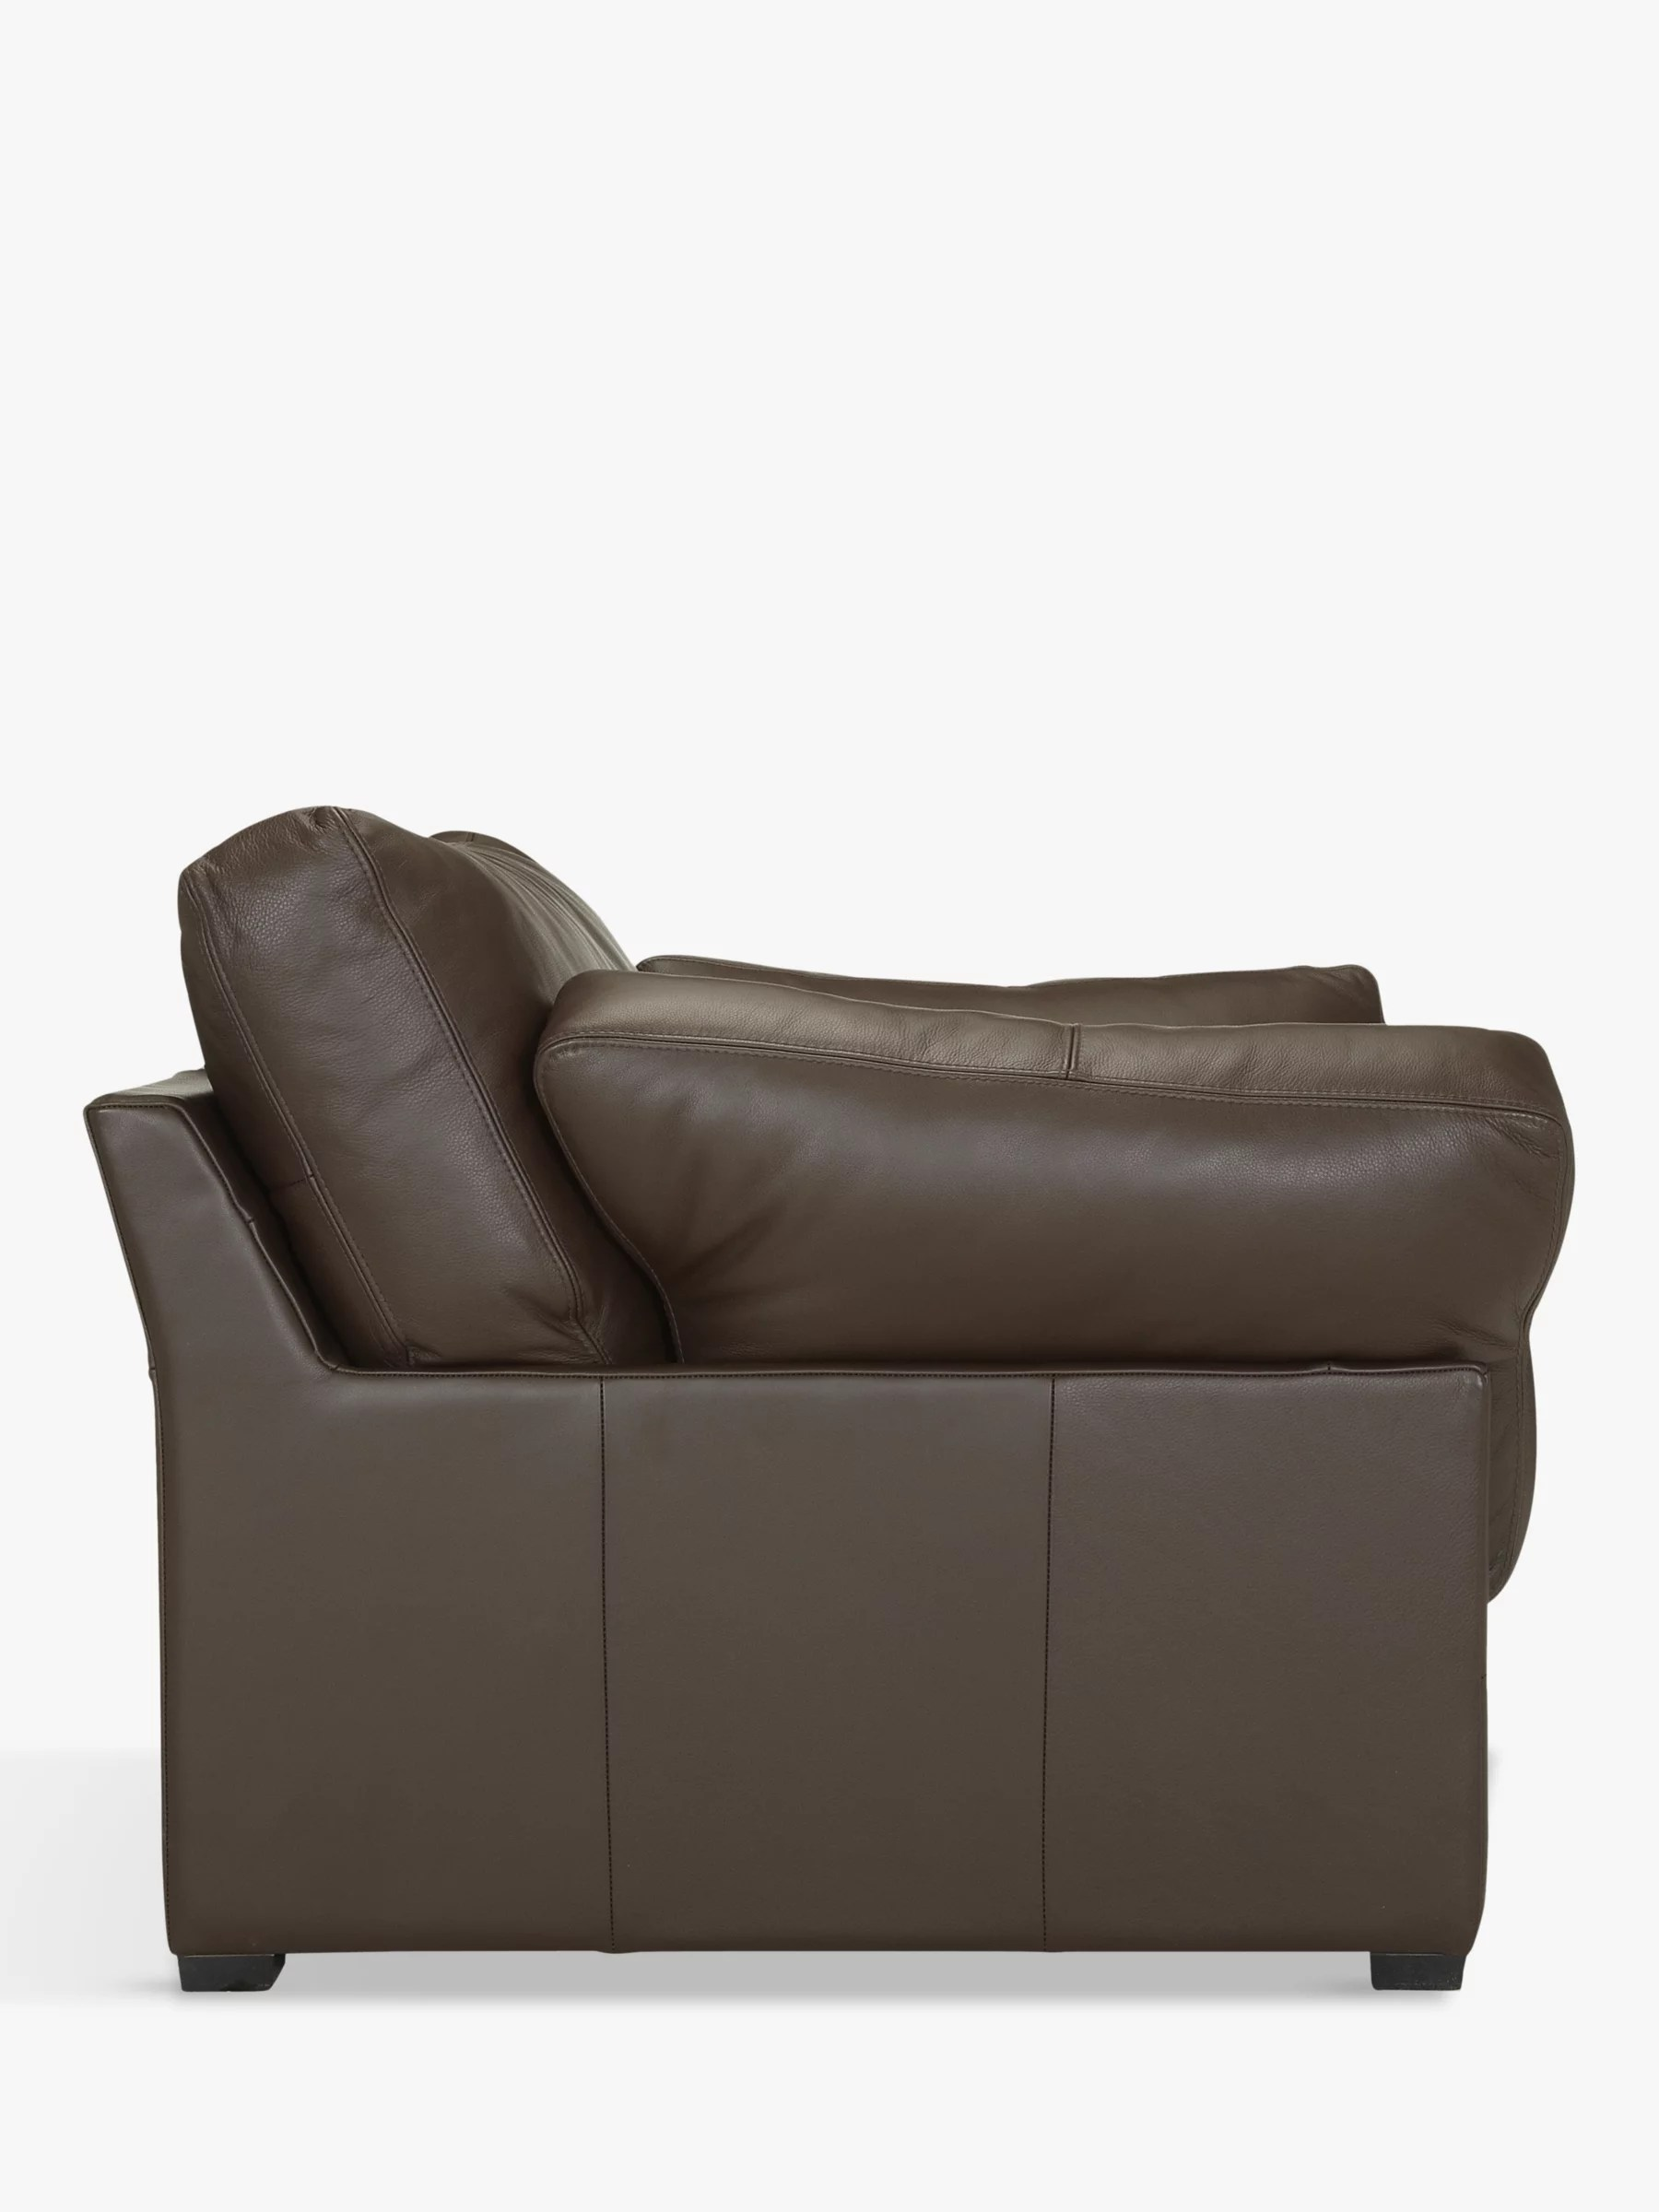 john lewis armchair covers what is a jerry chair java semi aniline leather nature